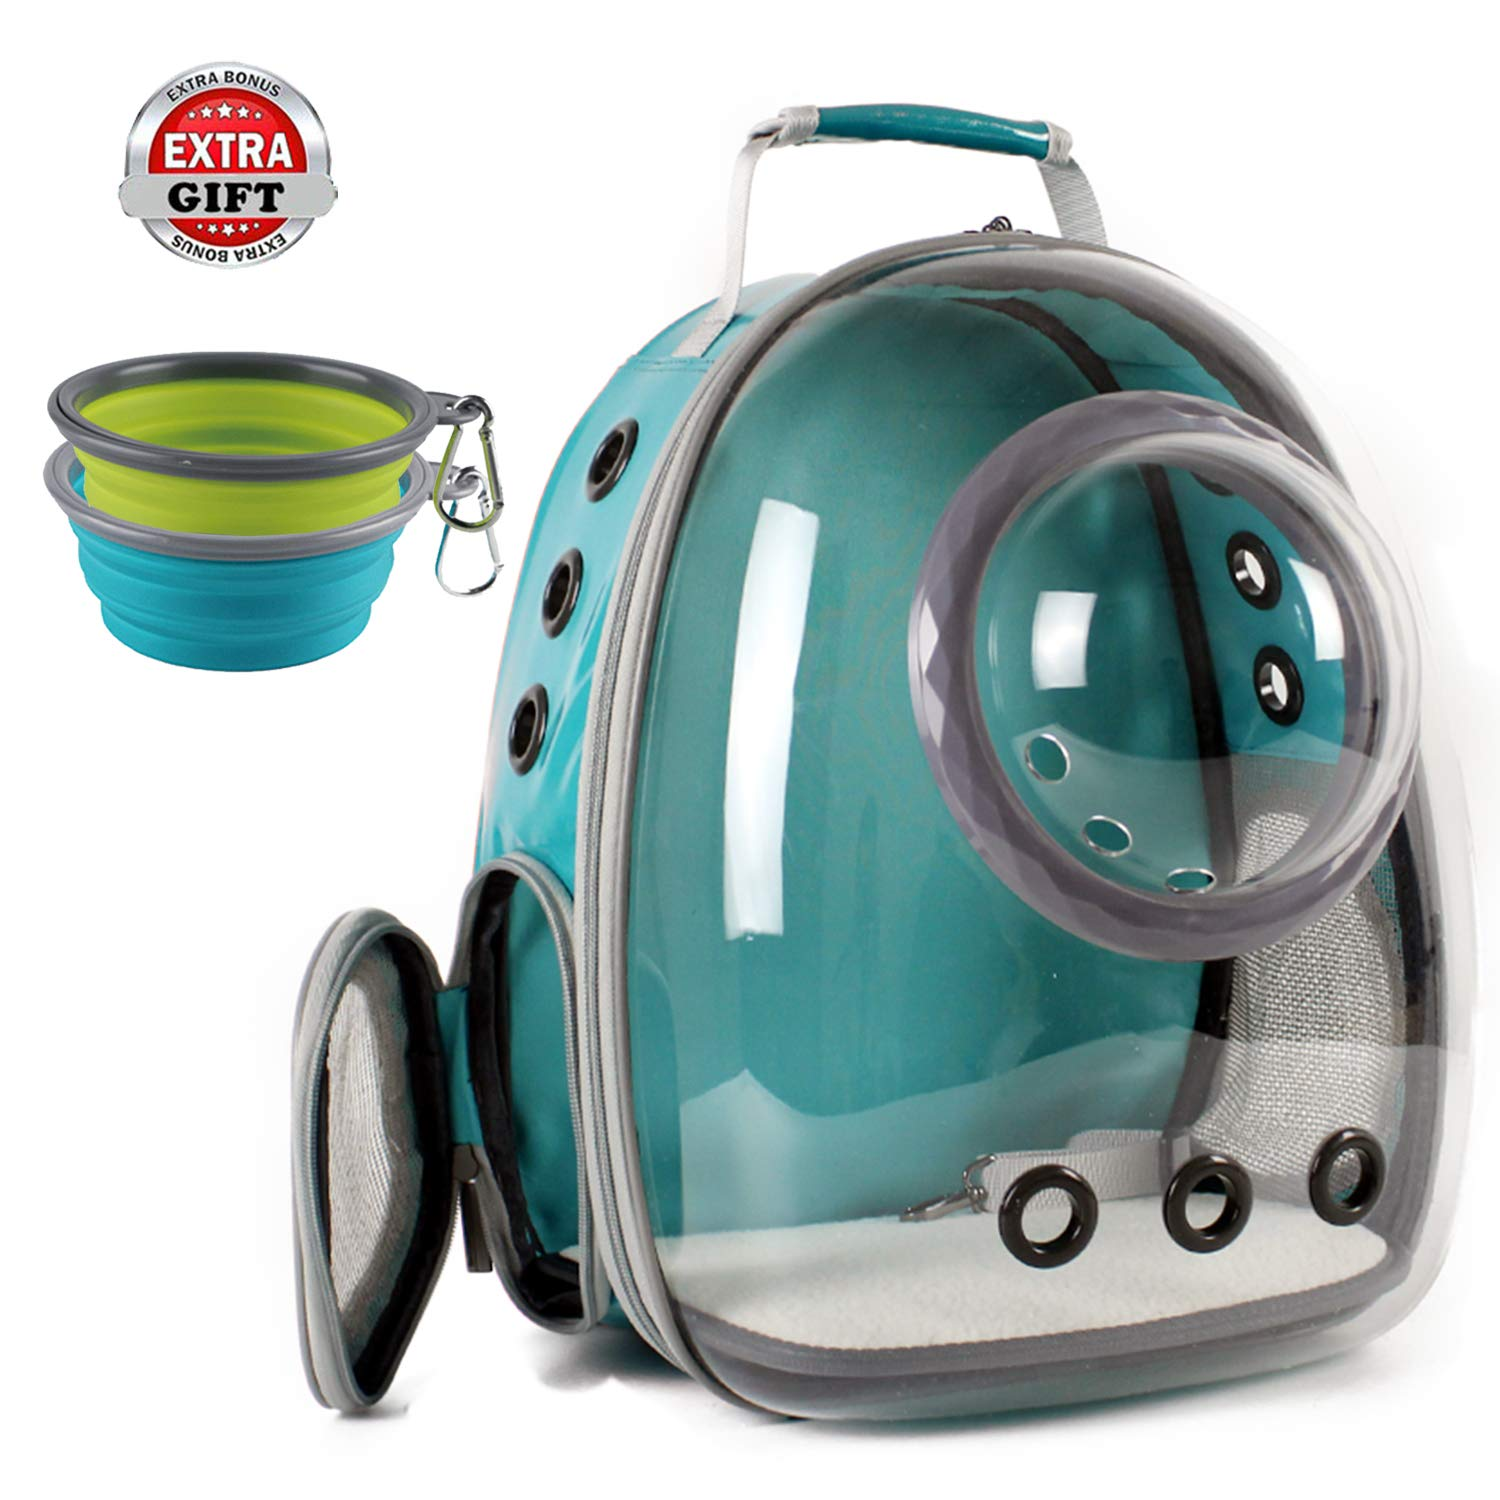 Hcupet Space Capsule Bubble Cat Backpack, Airline Approved Transparent Bubble Dome Waterproof Carrying & Holding Outdoor Traveling Backpack - Green